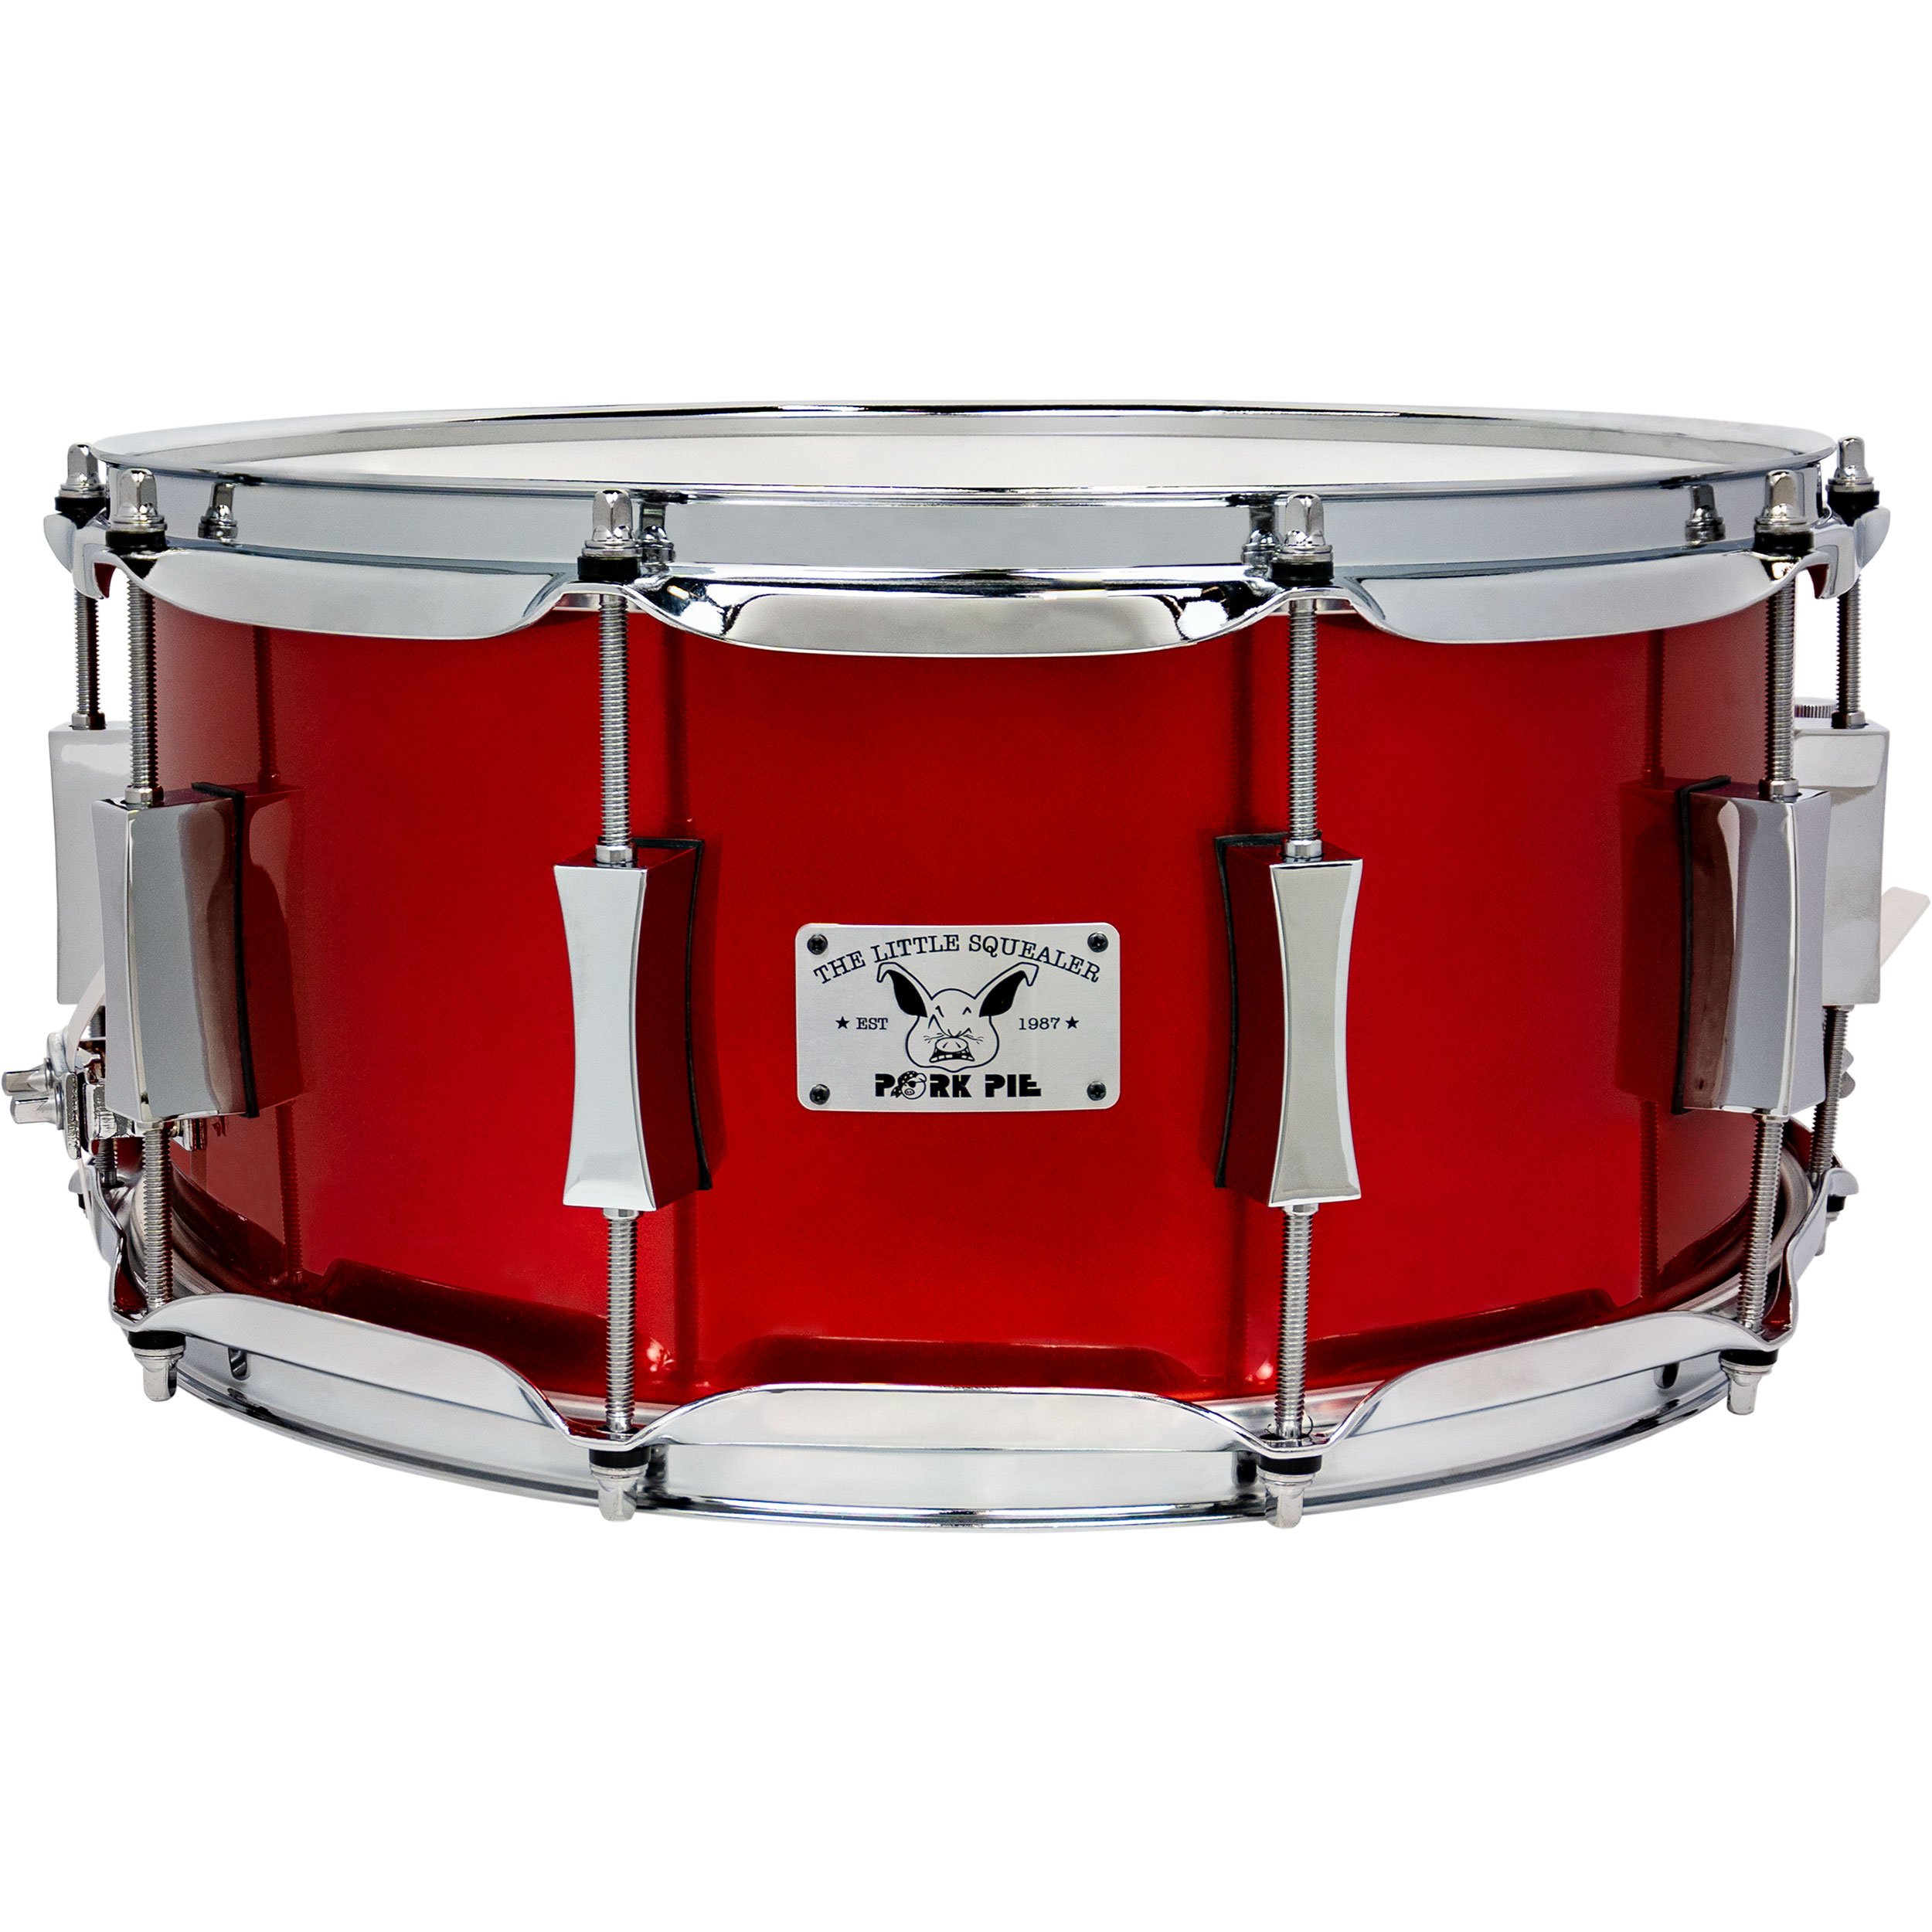 "Pork Pie Percussion 6.5"" x 14"" Little Squealer Snare Drum in Firethorn Red"